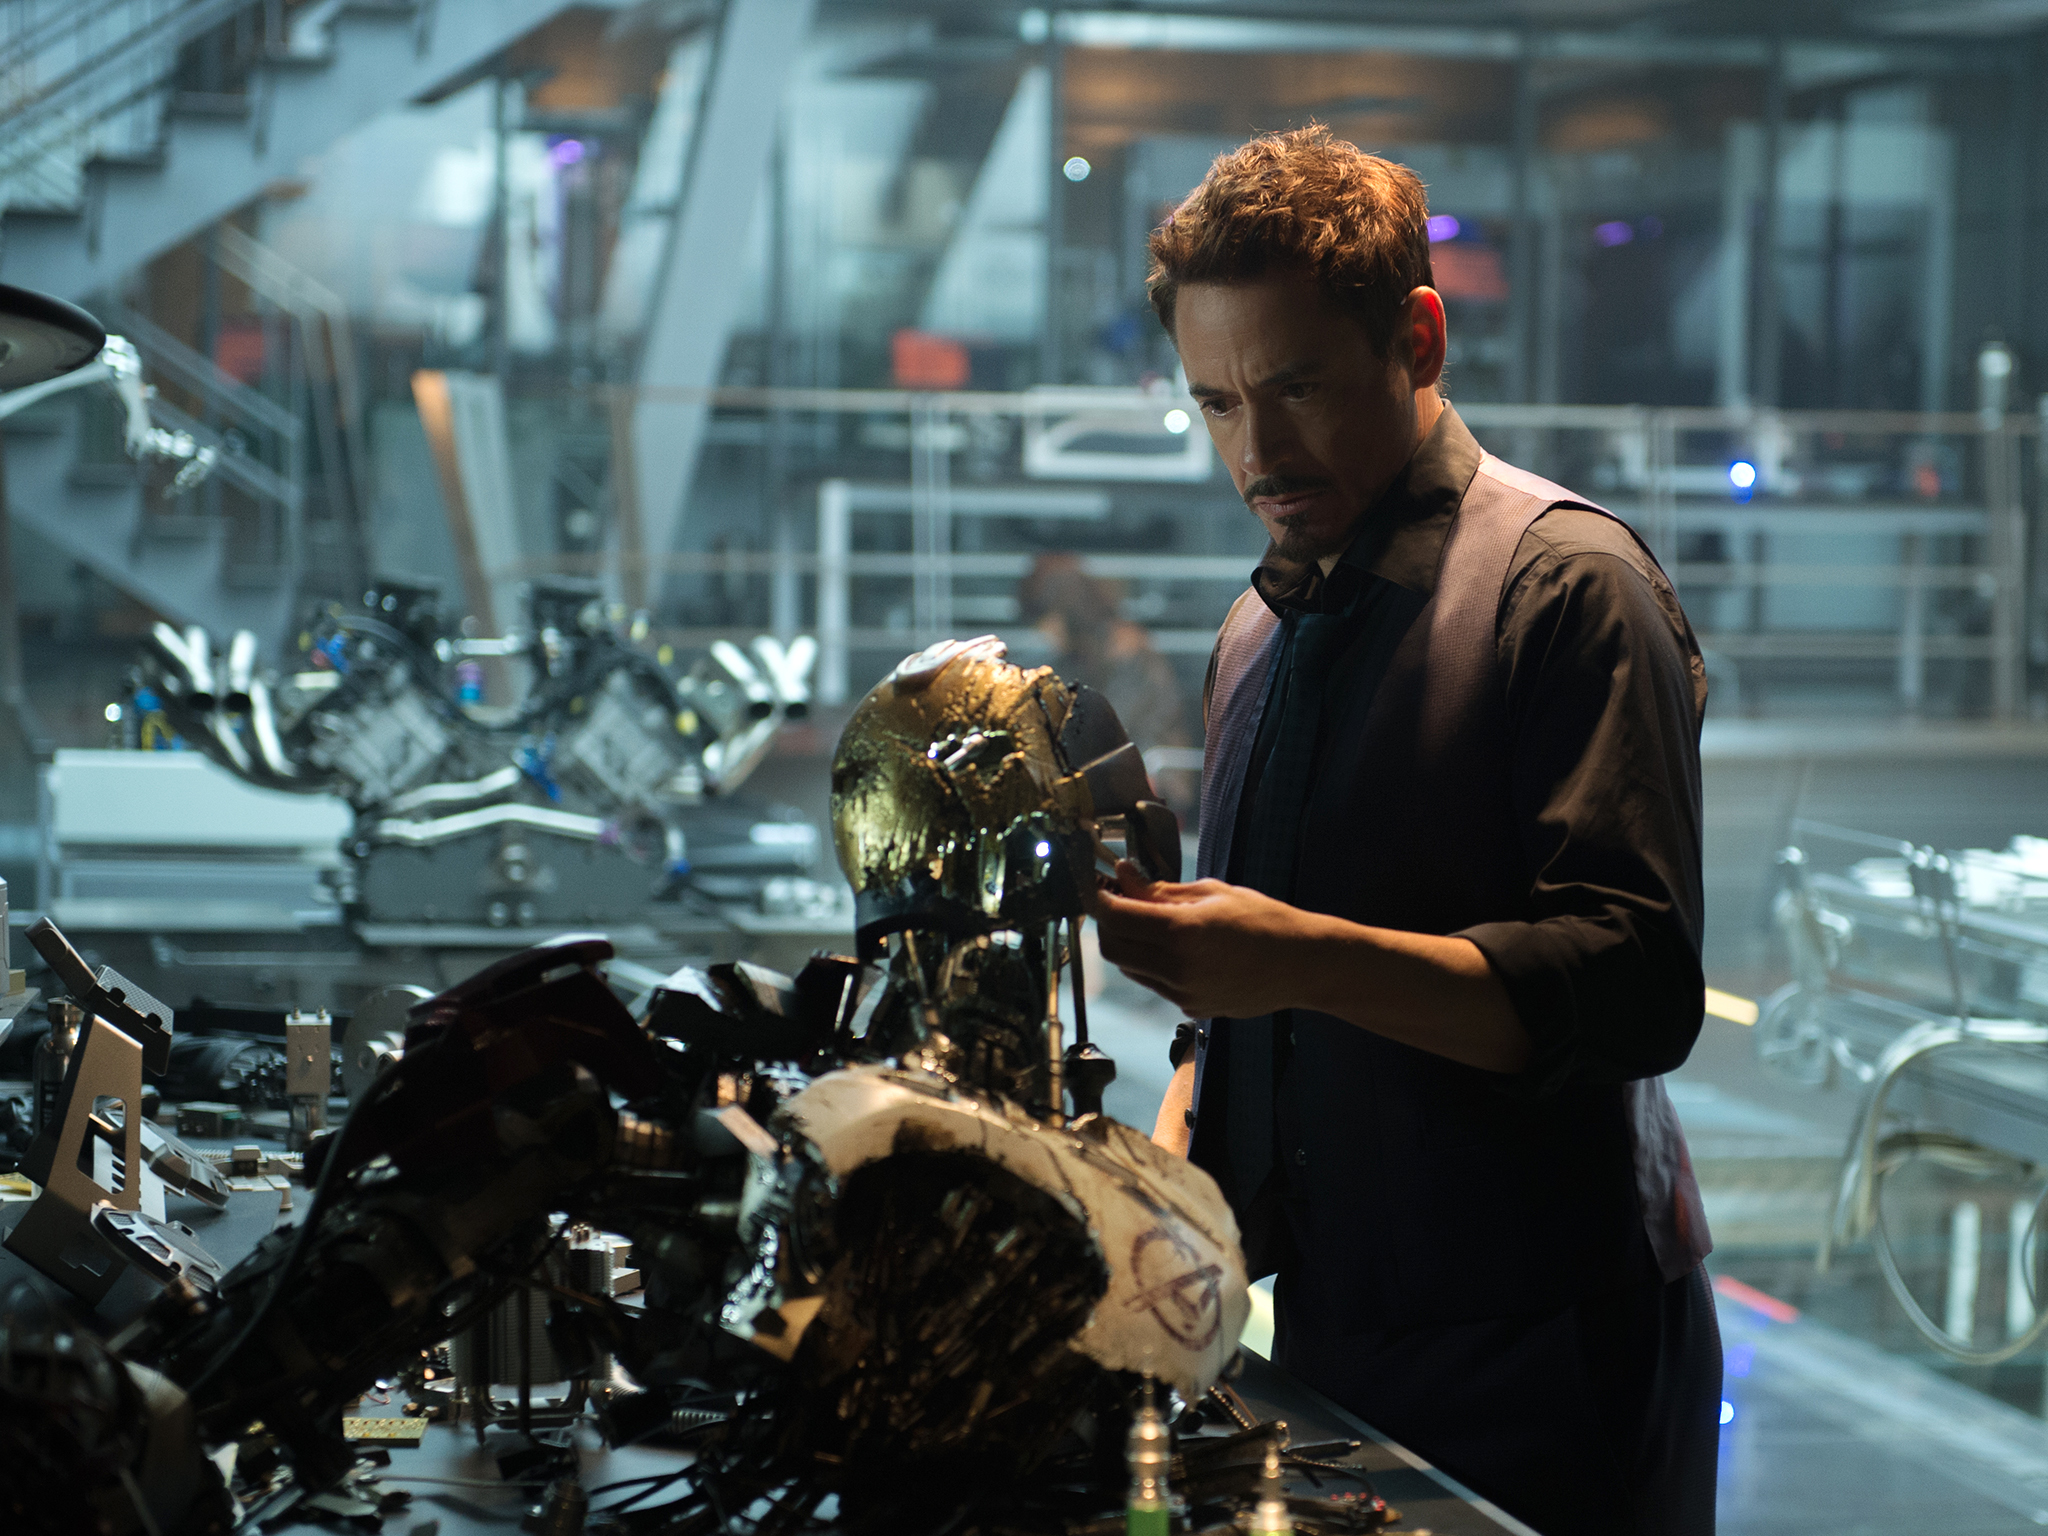 Ten things we learned from Avengers: Age of Ultron